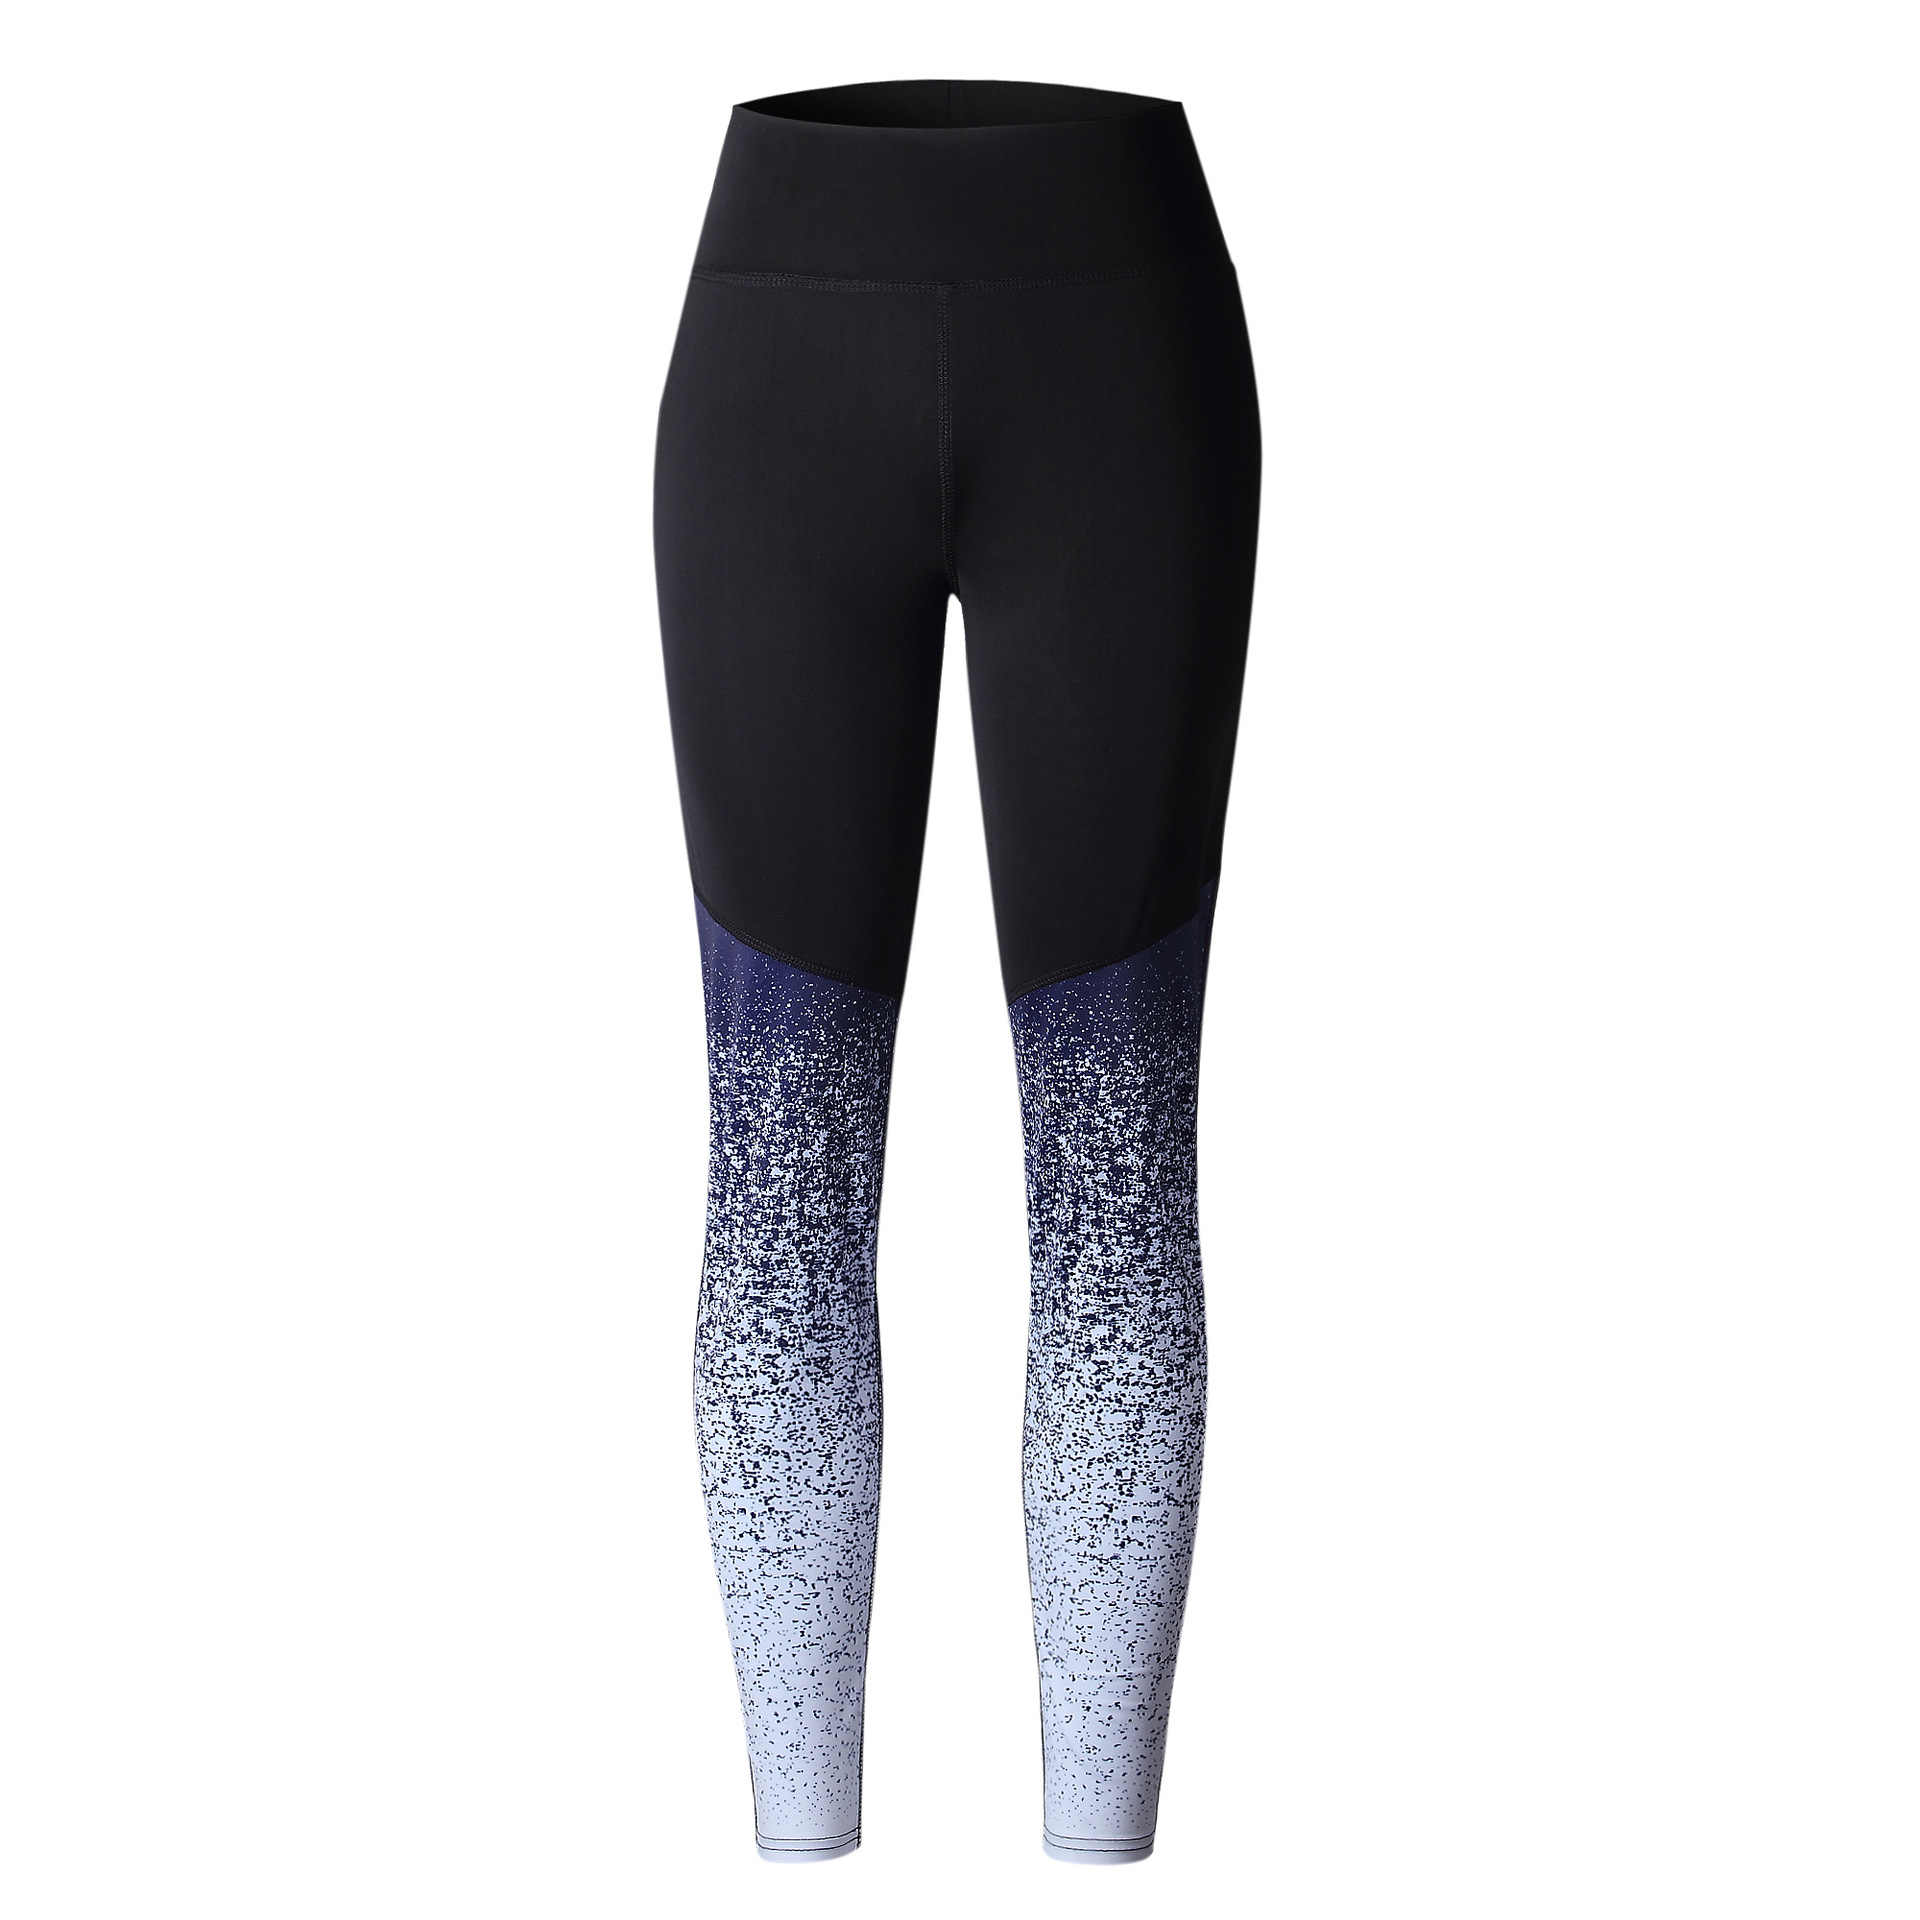 a102bad96e61 ... Women Fitness Leggings Casual Print Workout Pants Pencil Stretchy  Trousers Gradient Legging Skinny Leggins Gothic Jeggings